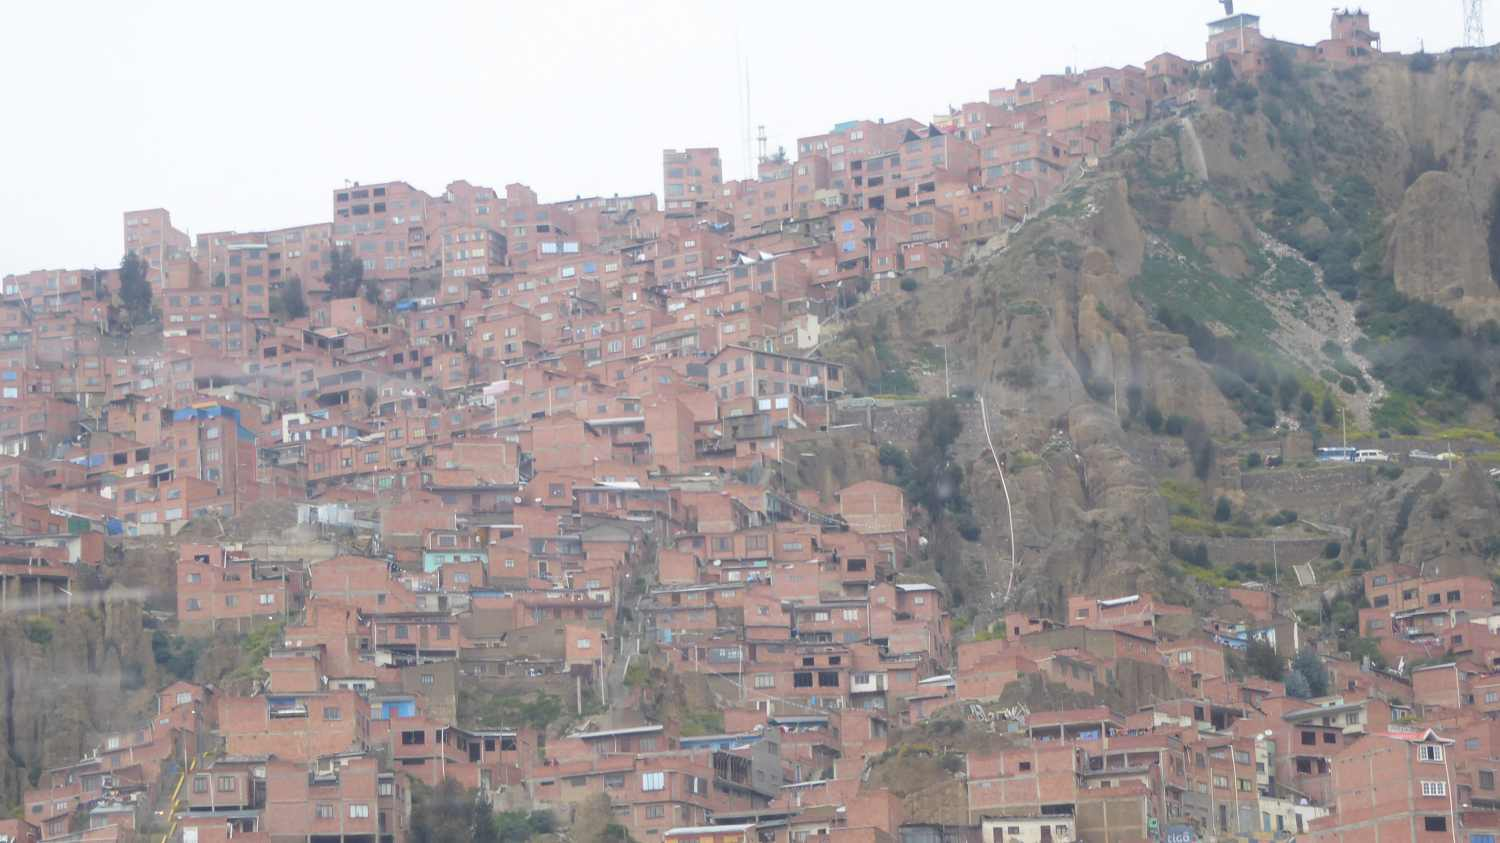 Red houses on the hill